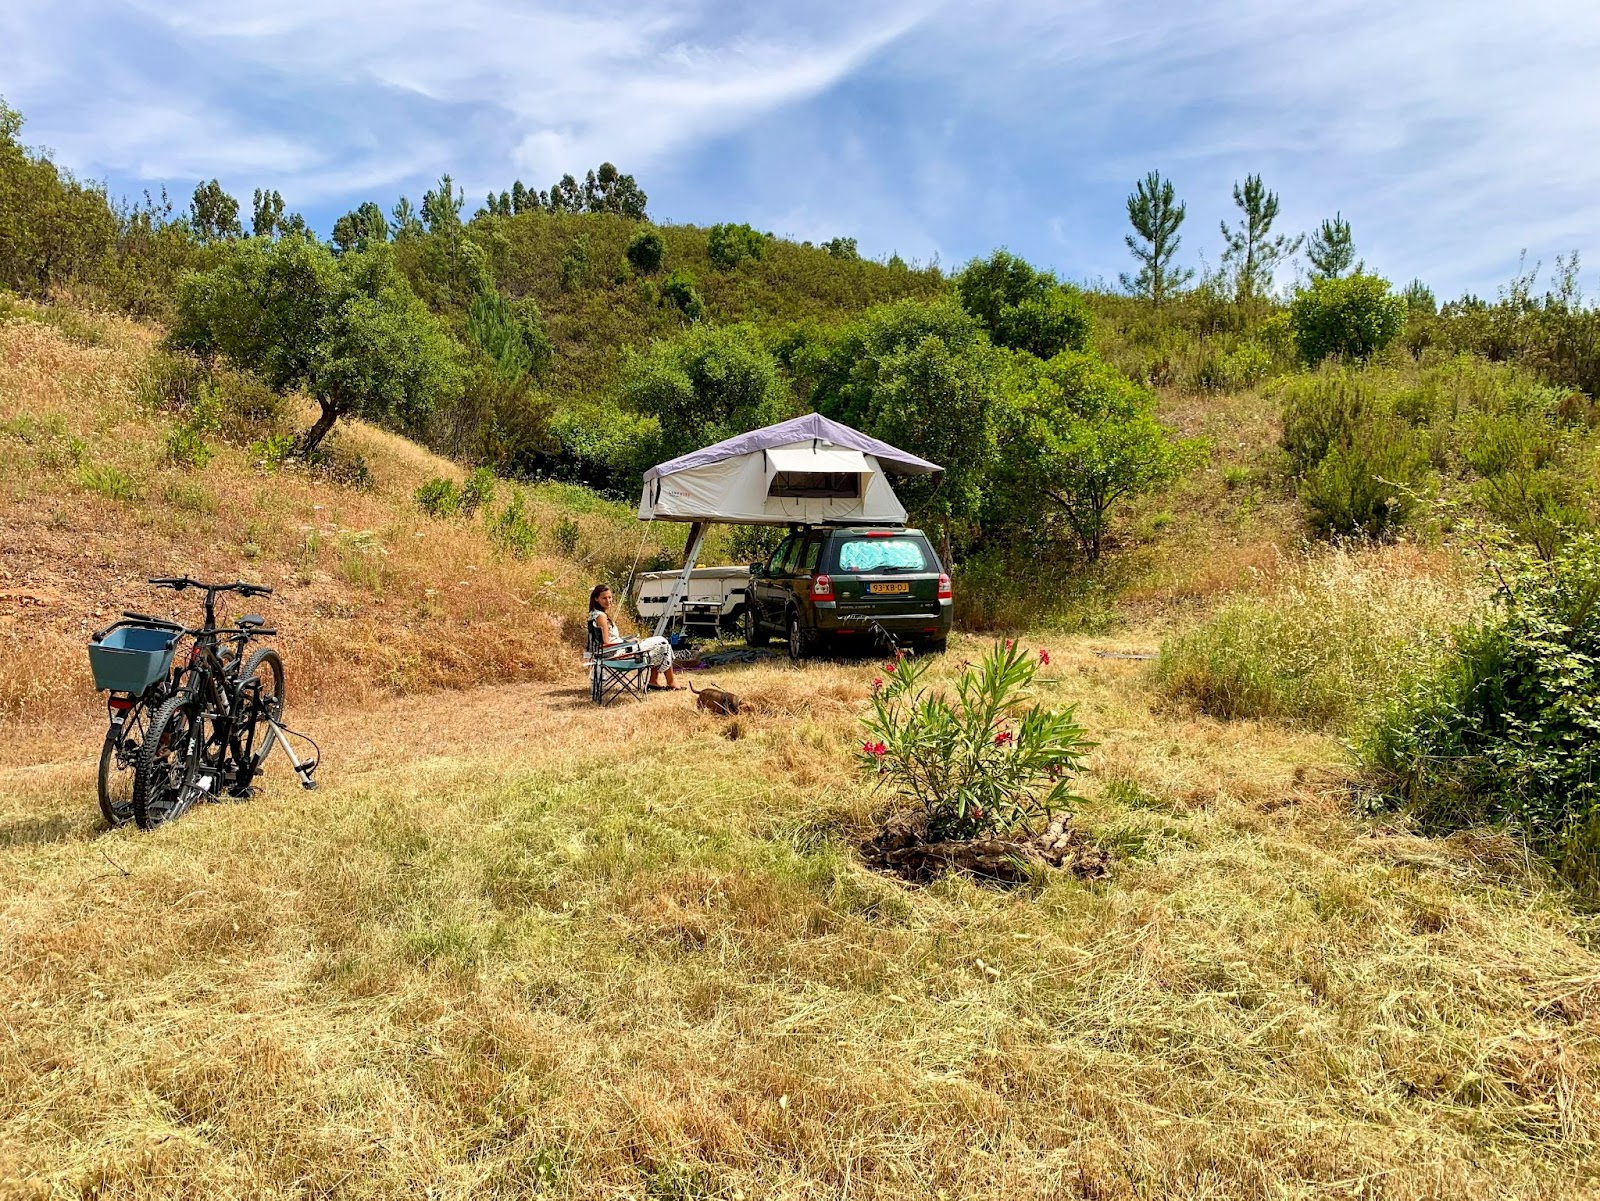 Benefits of sharing economy Campspace in Portugal